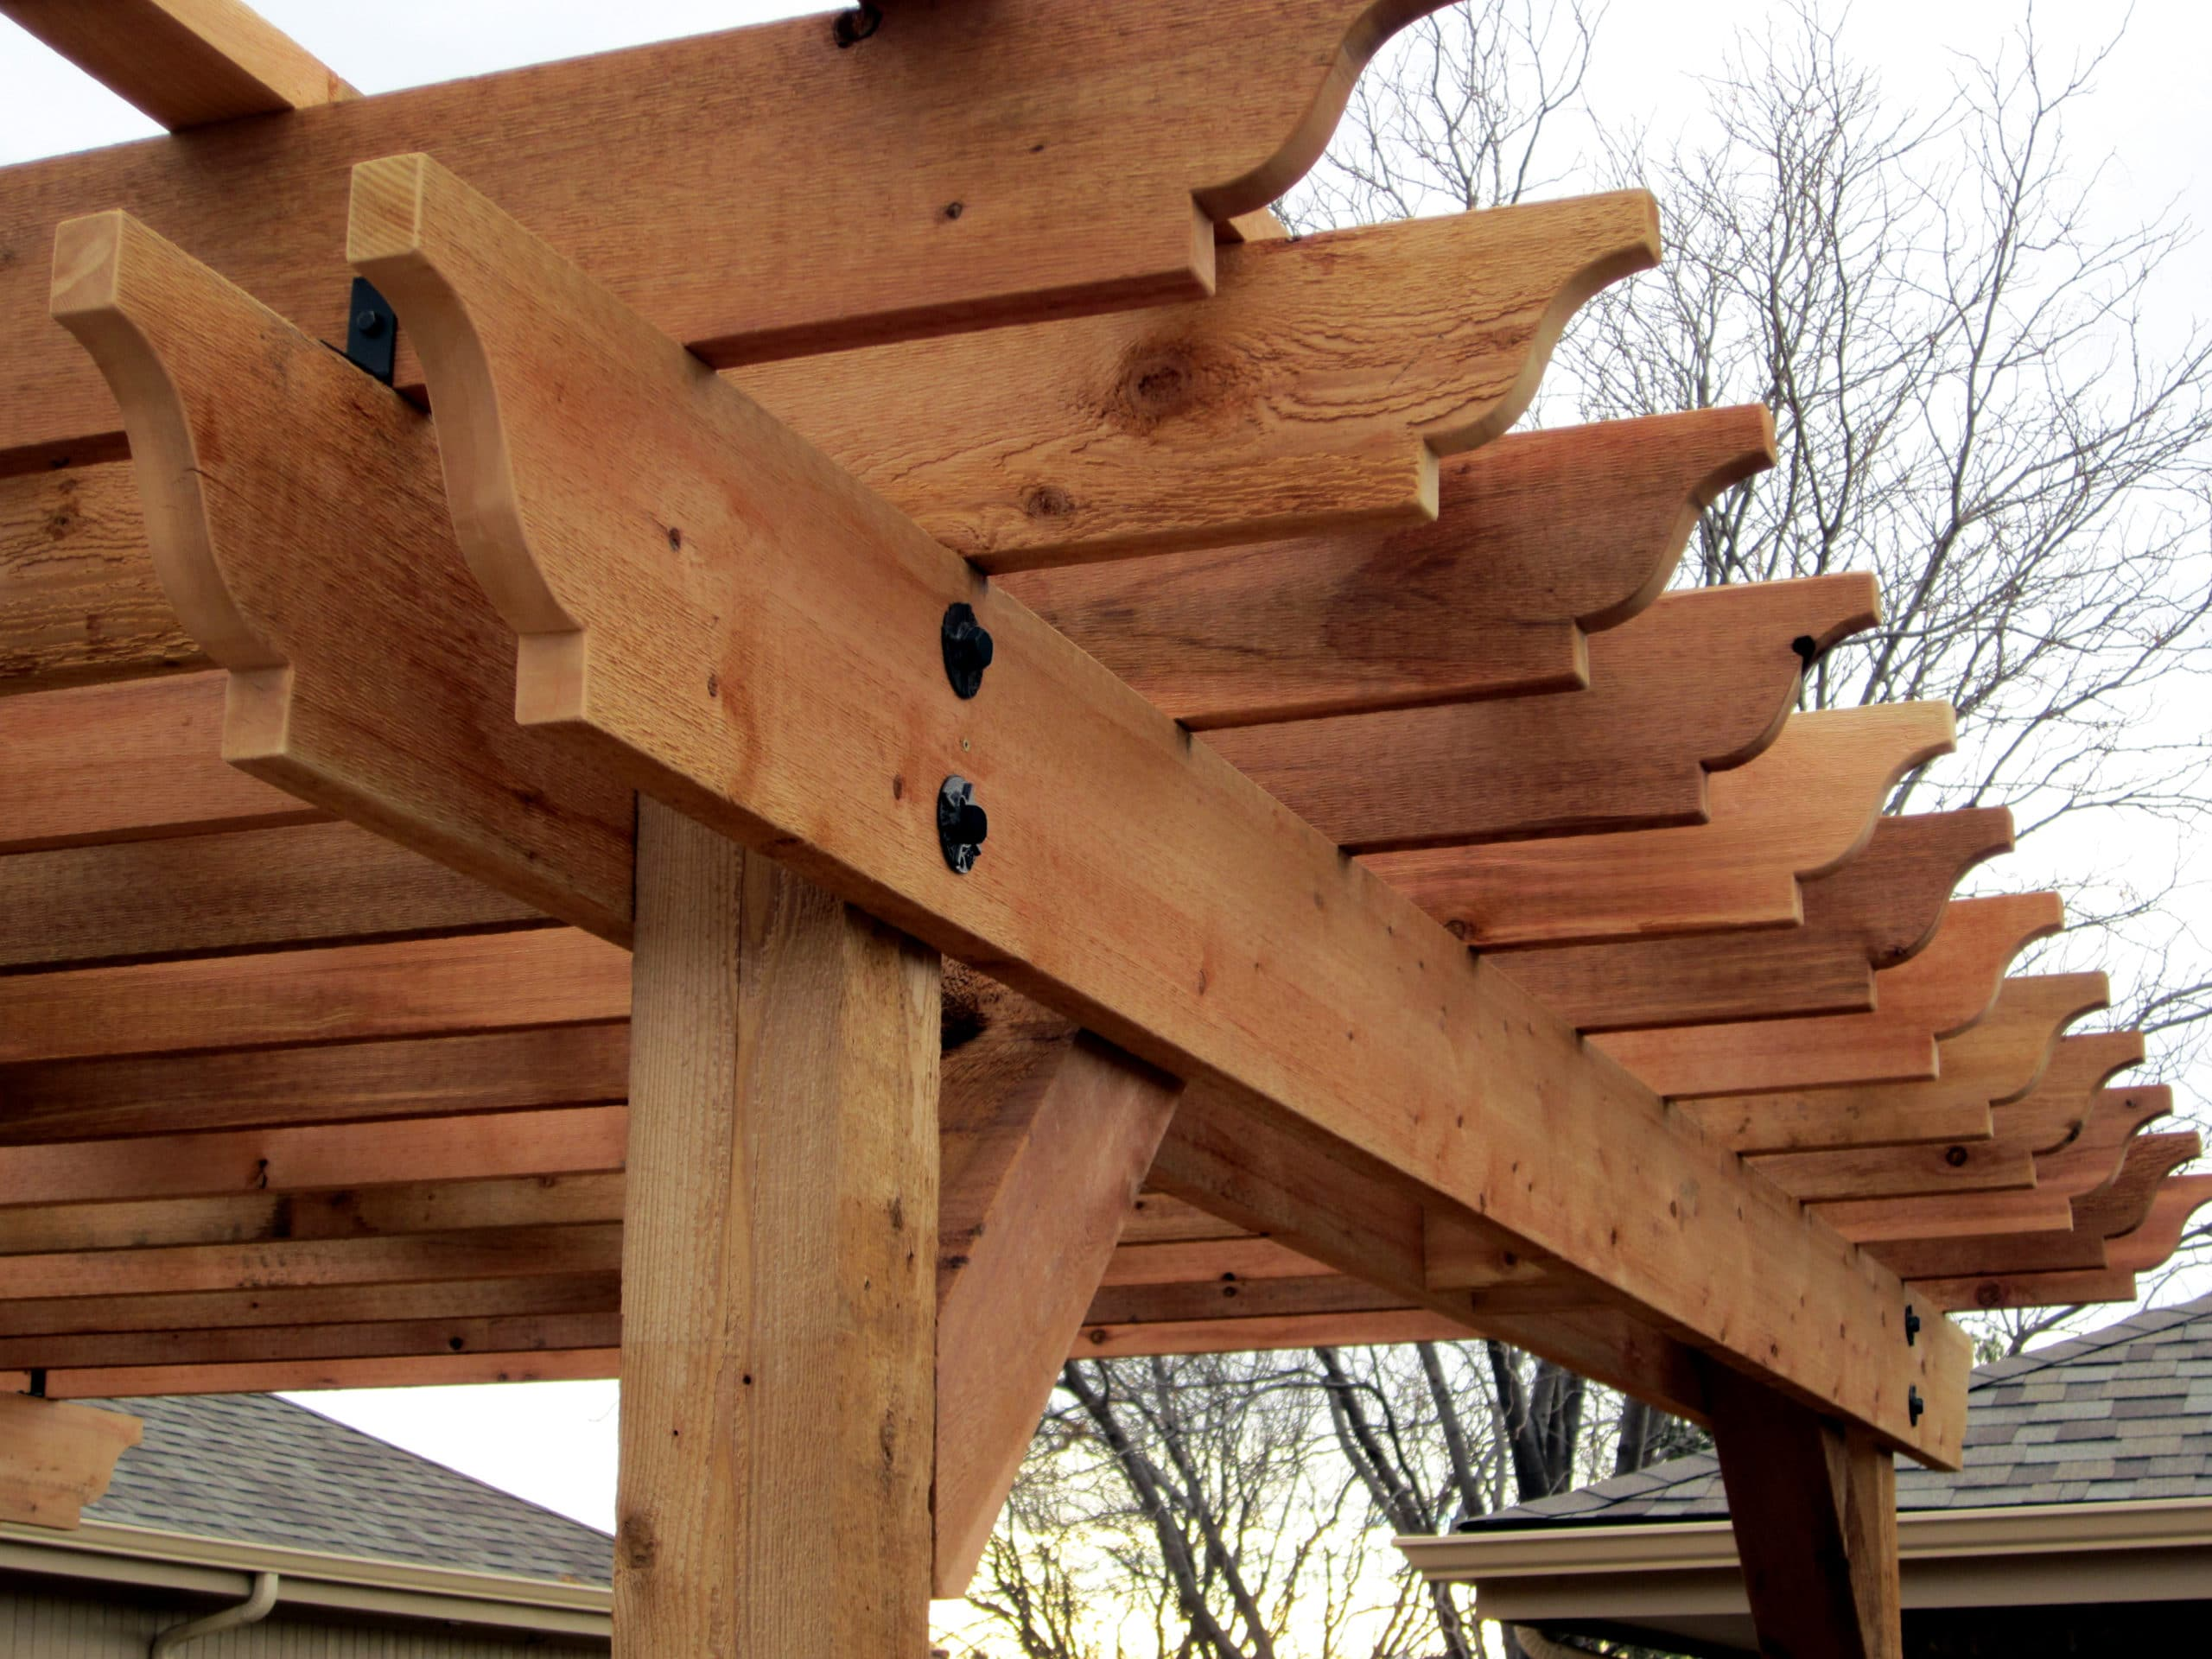 detailed image of pergola ends as well as main supports.